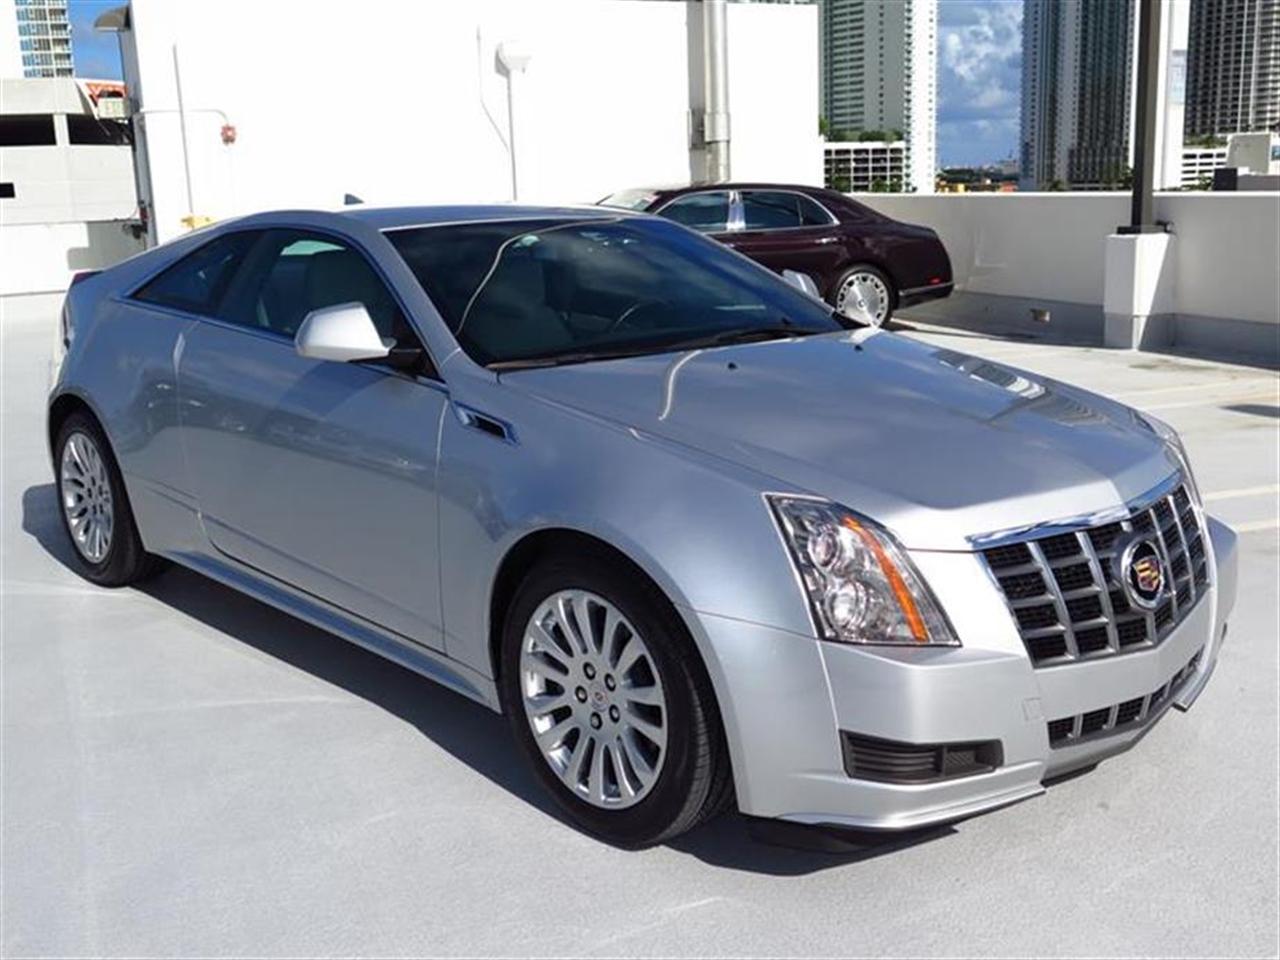 2012 CADILLAC CTS 2dr Cpe RWD 29026 miles Armrest front center Climate control dual-zone automa